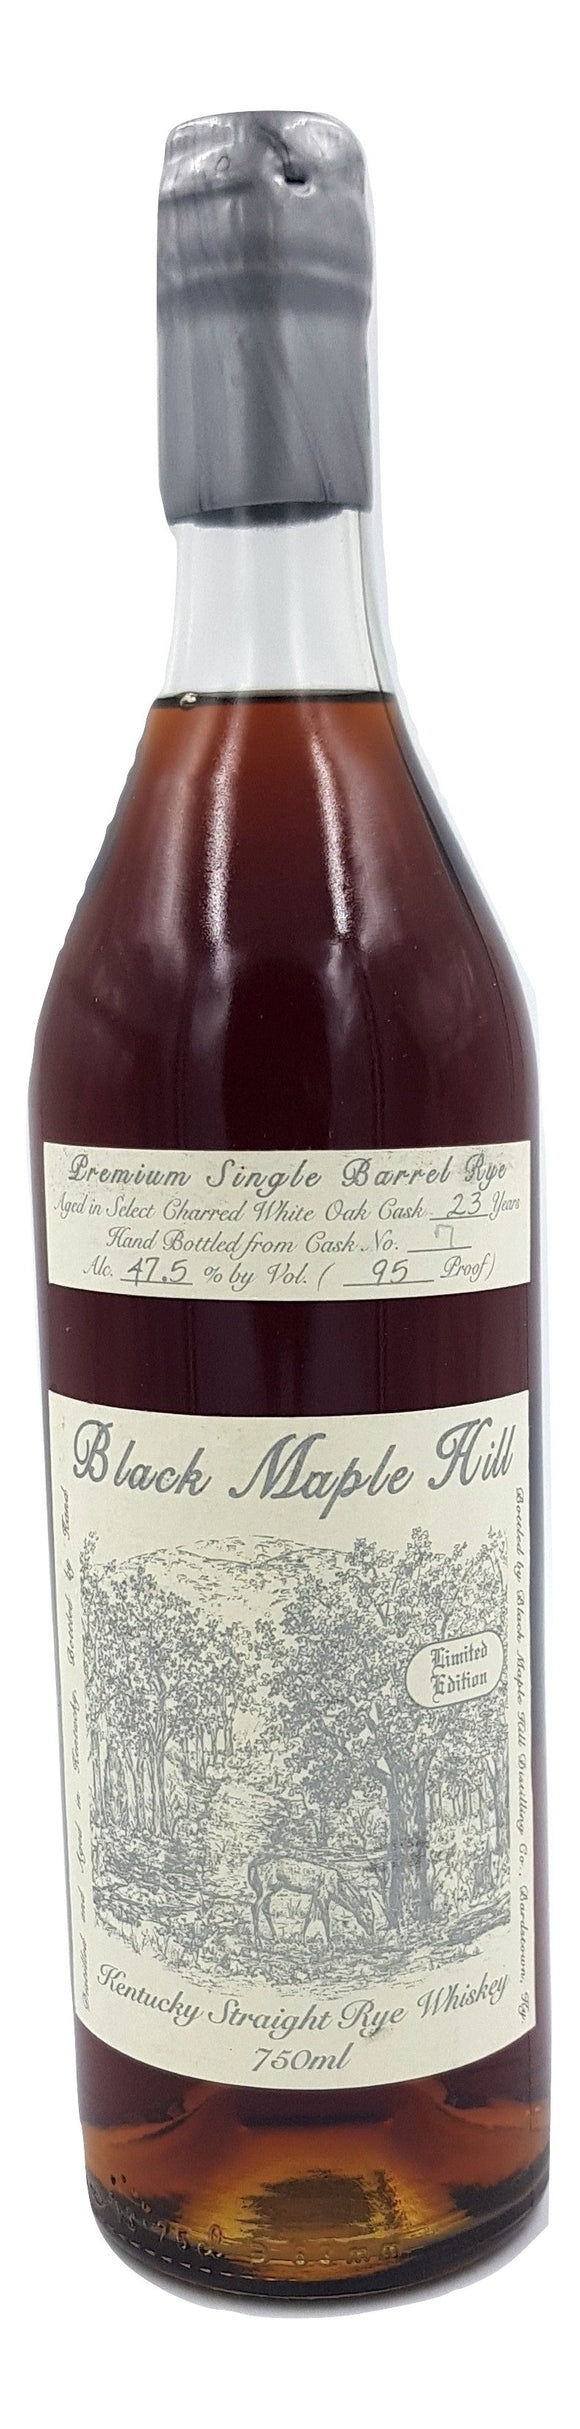 Black Maple Hill 23 Year Old Single Barrel Rye - Cask 1